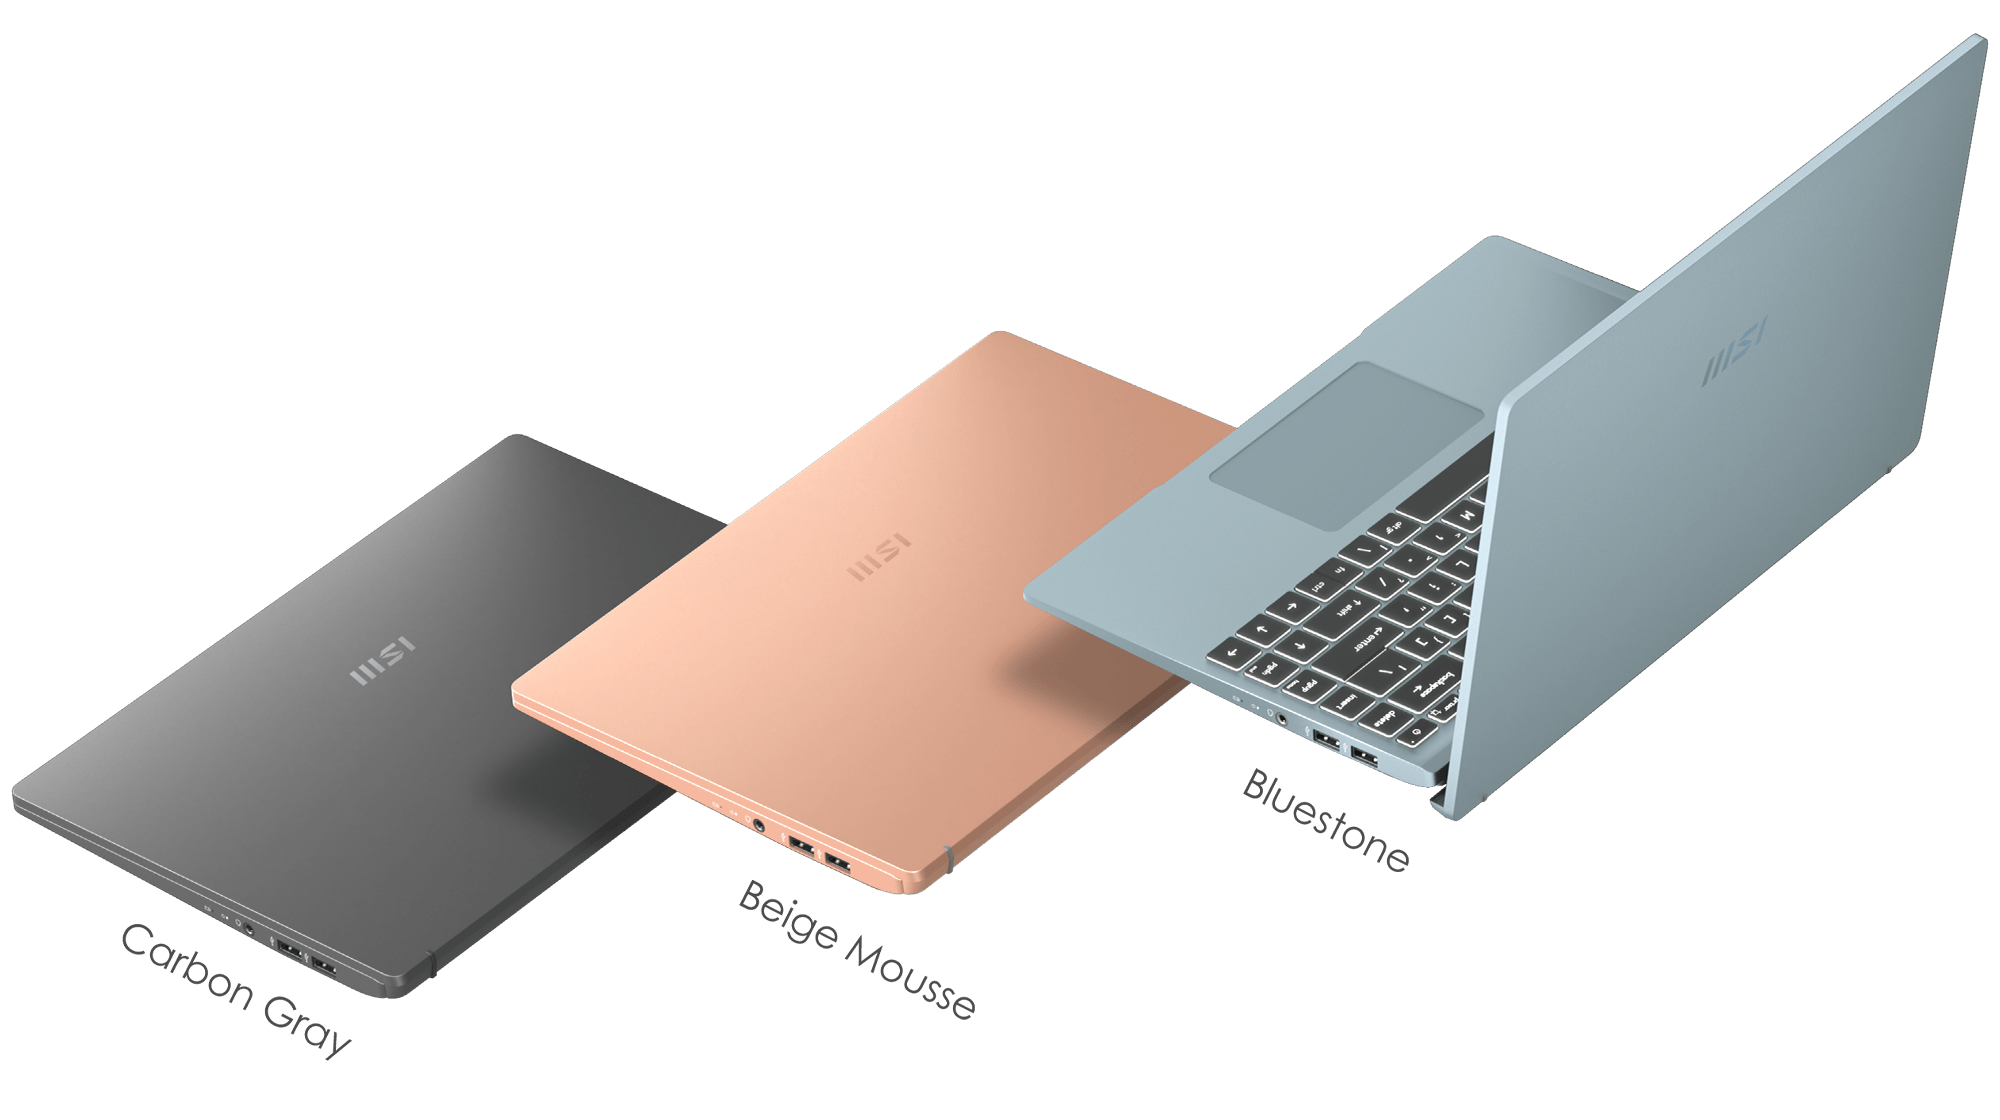 id design notebook in 3 colors